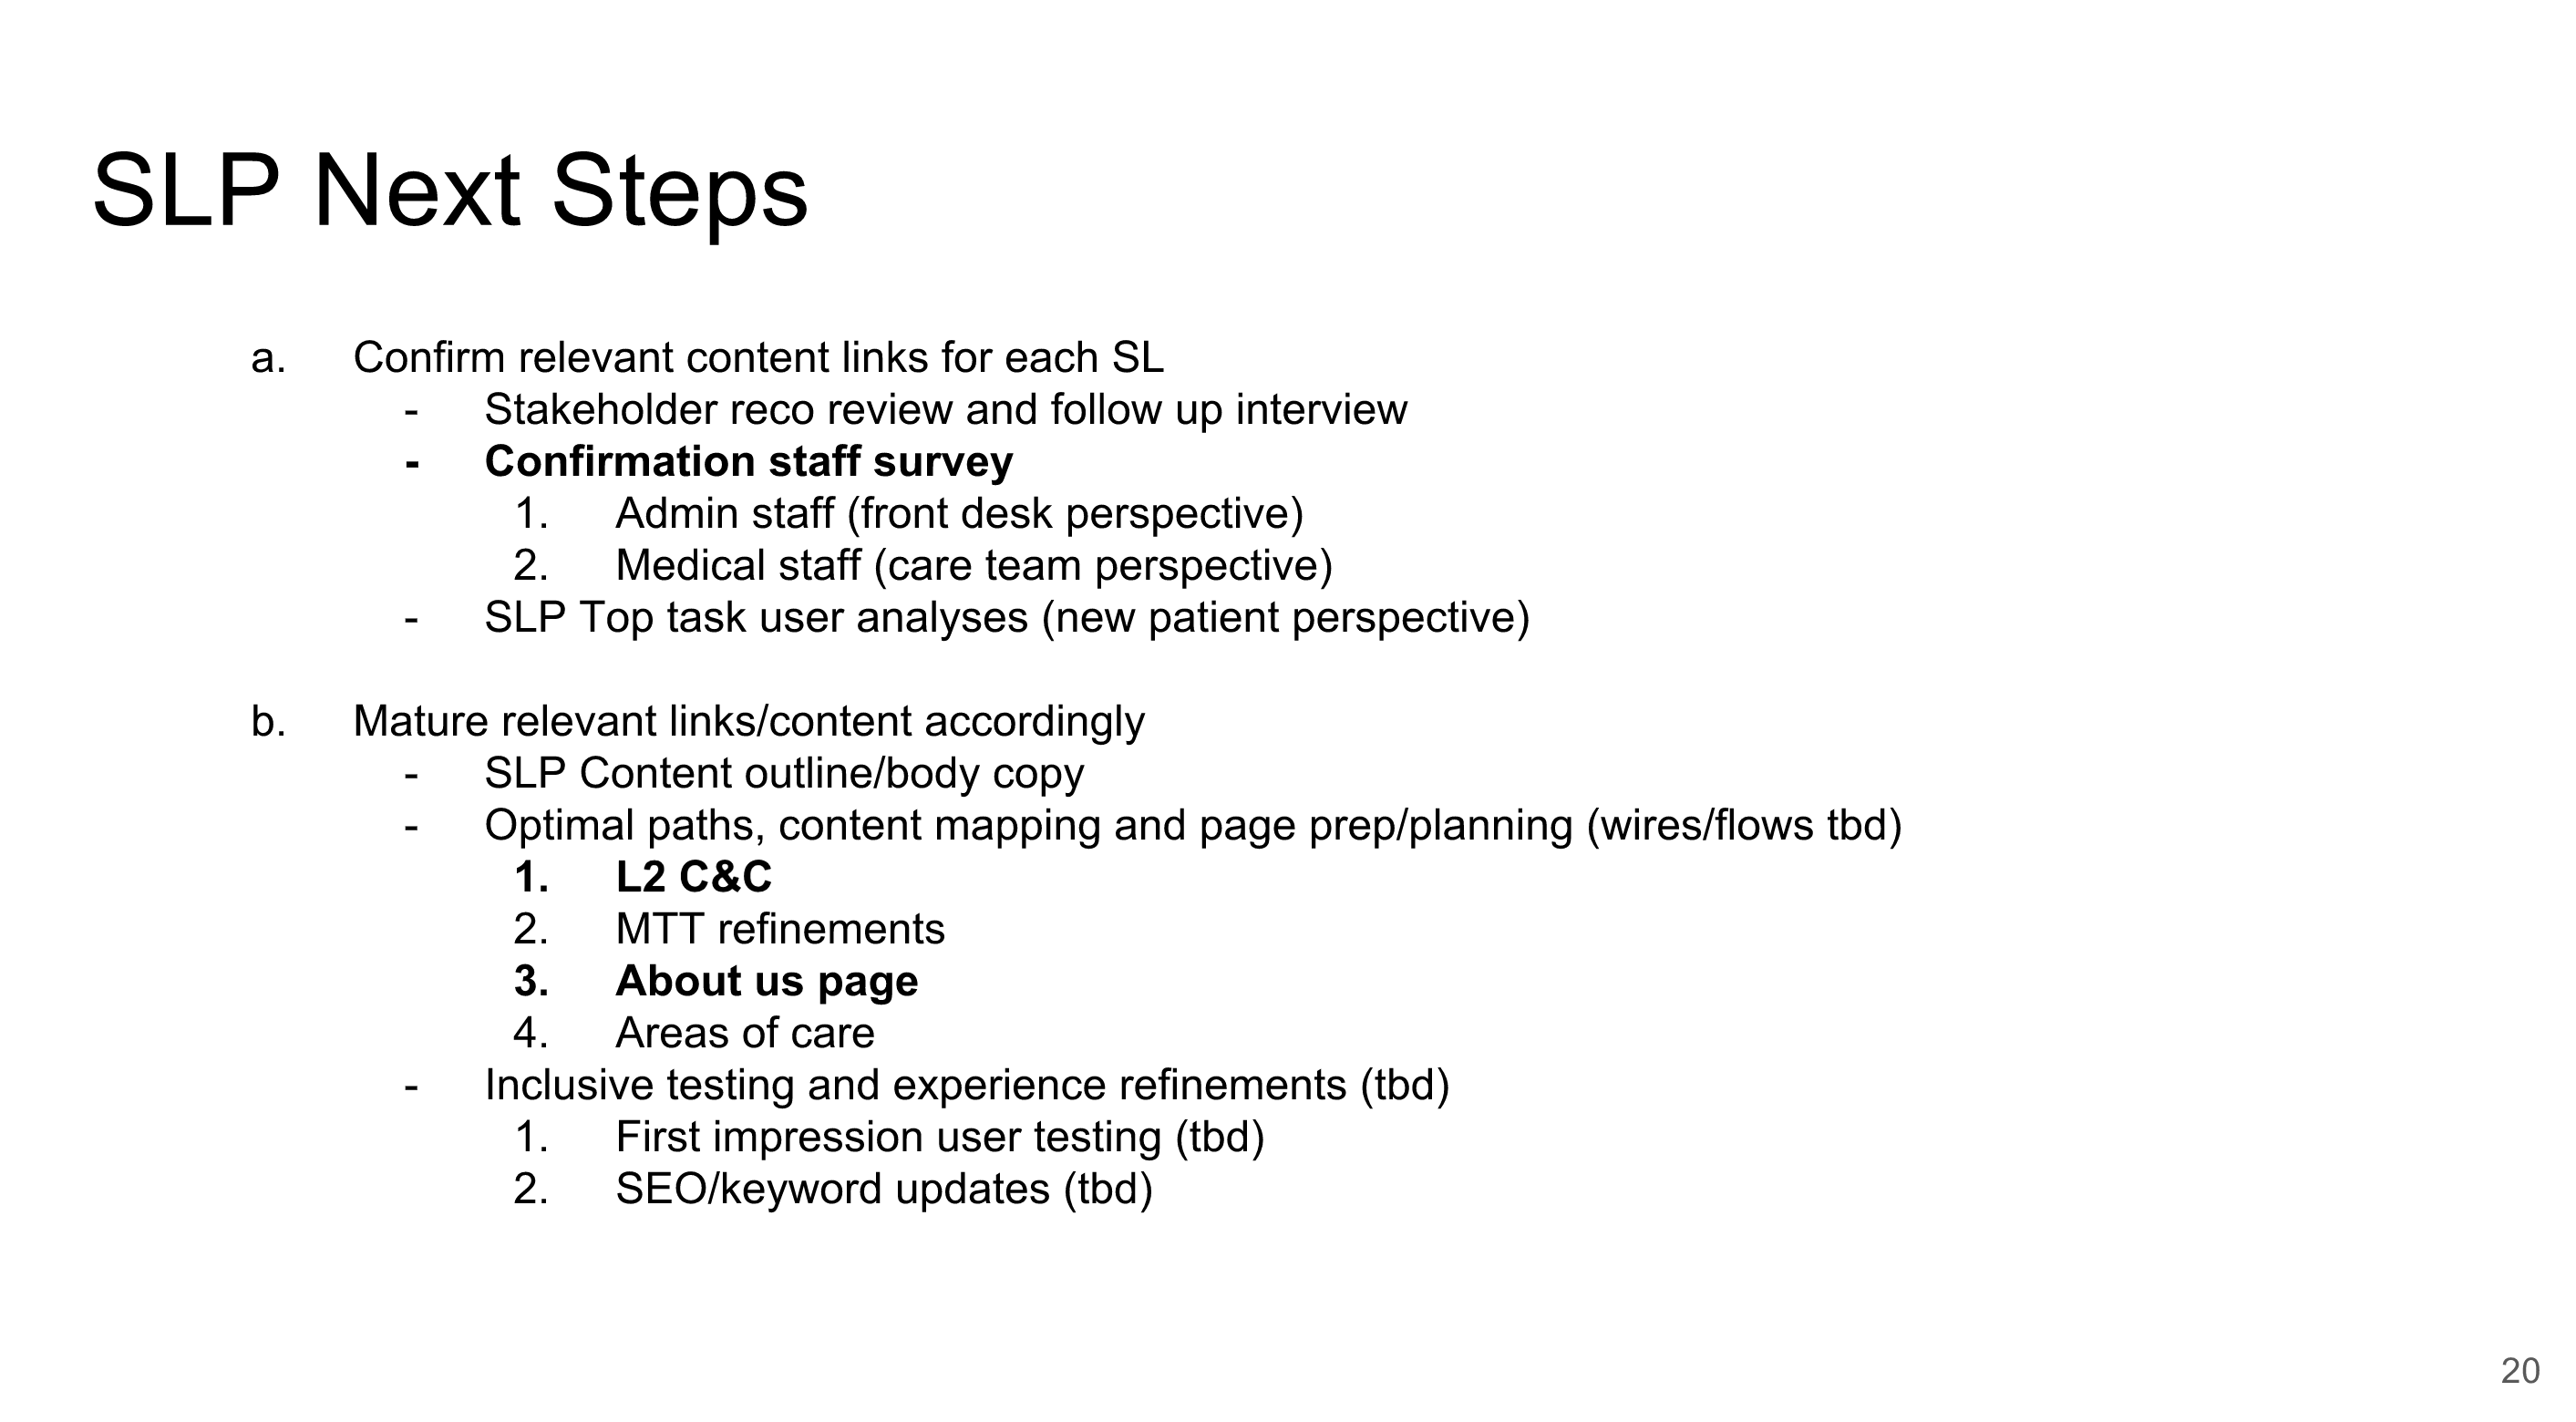 Next steps are highlighted for marketing/content stakeholders to keep work moving forward with service lines.